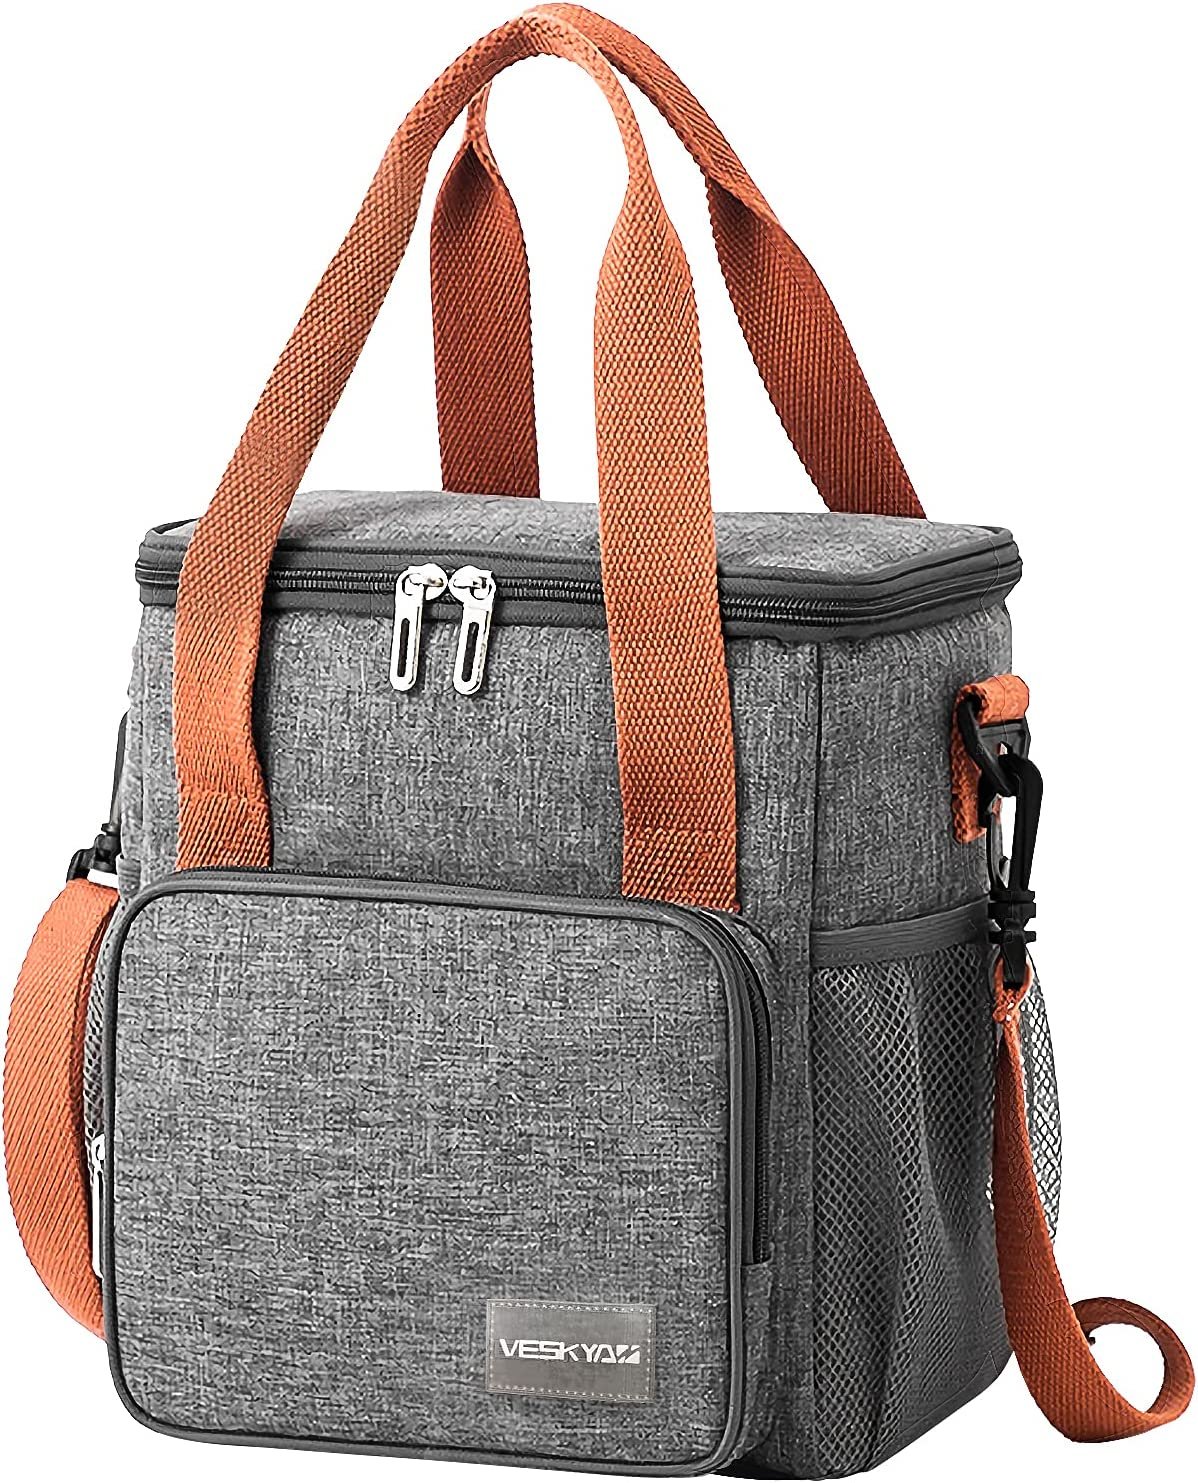 Leakproof Cooler Lunch Box for Women Men, VESKYAO Insulated Lunch Bag Fresh Reusable Tote Bag with Adjustable Shoulder Strap for Office Work School Picnic Beach 12-Can(9L)